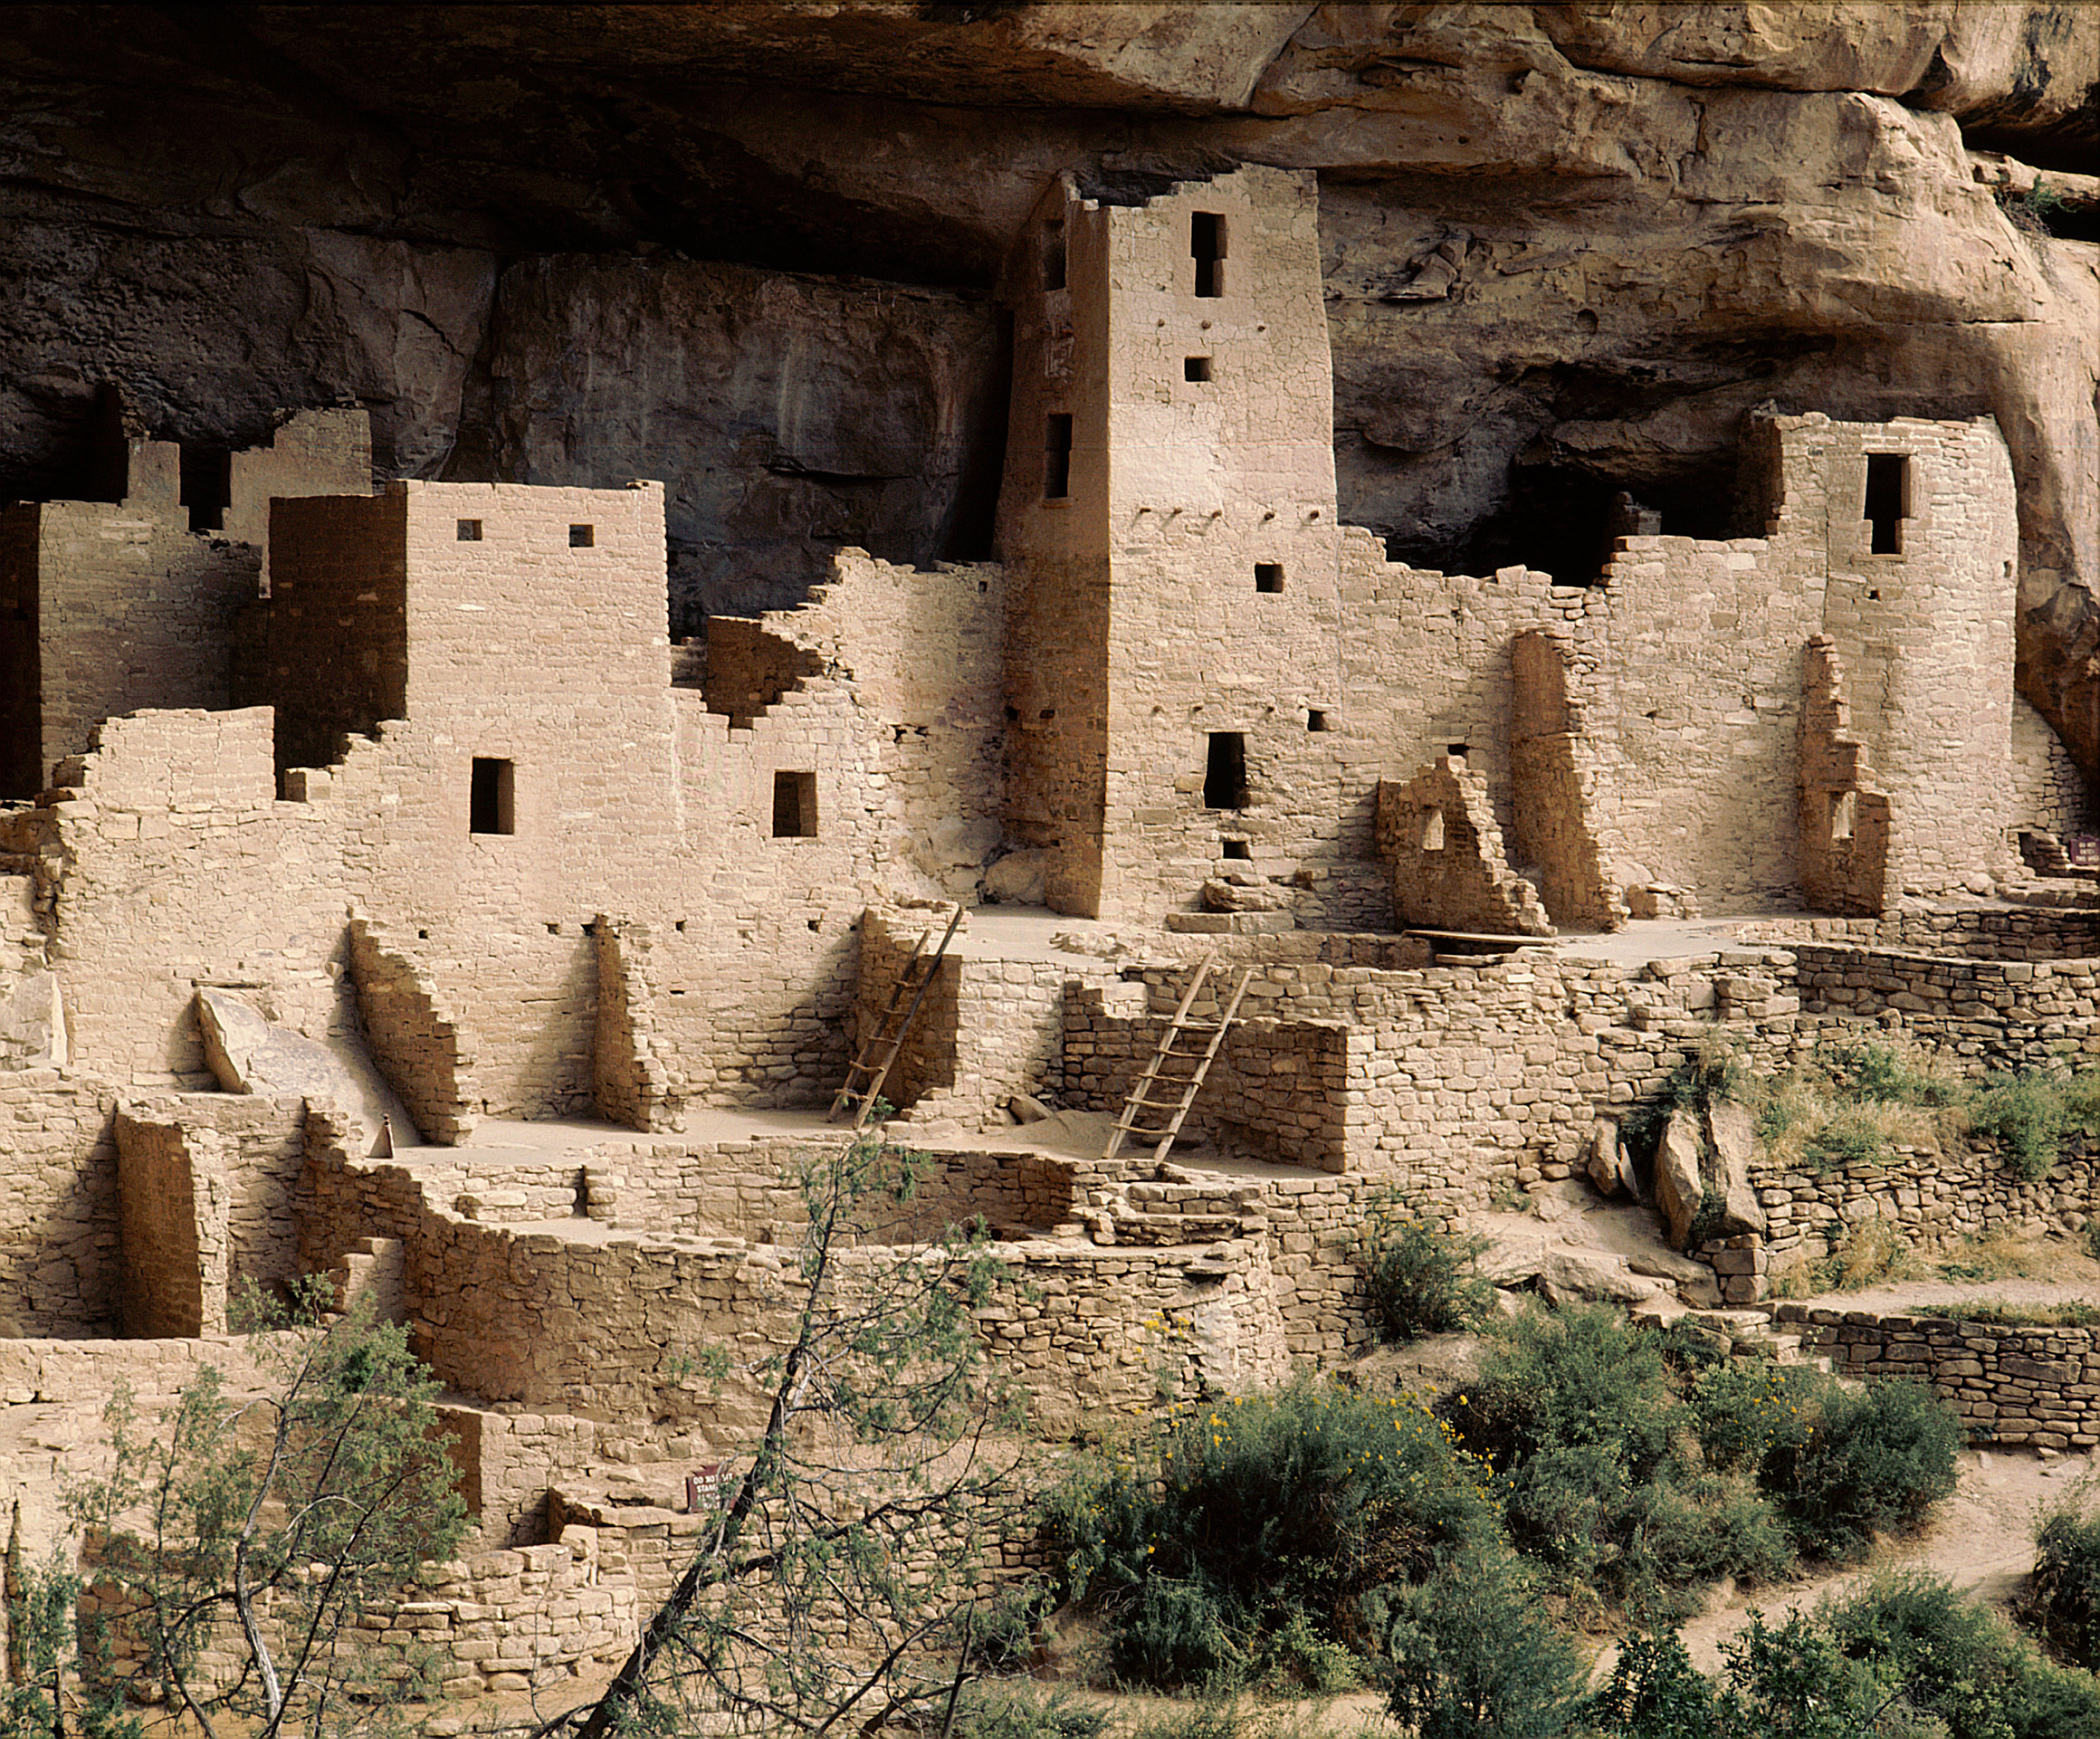 Part of the Cliff Palace at Mesa Verde in Colorado, showing dwellings and kivas. The kivas may be distinguished by their circular shape.